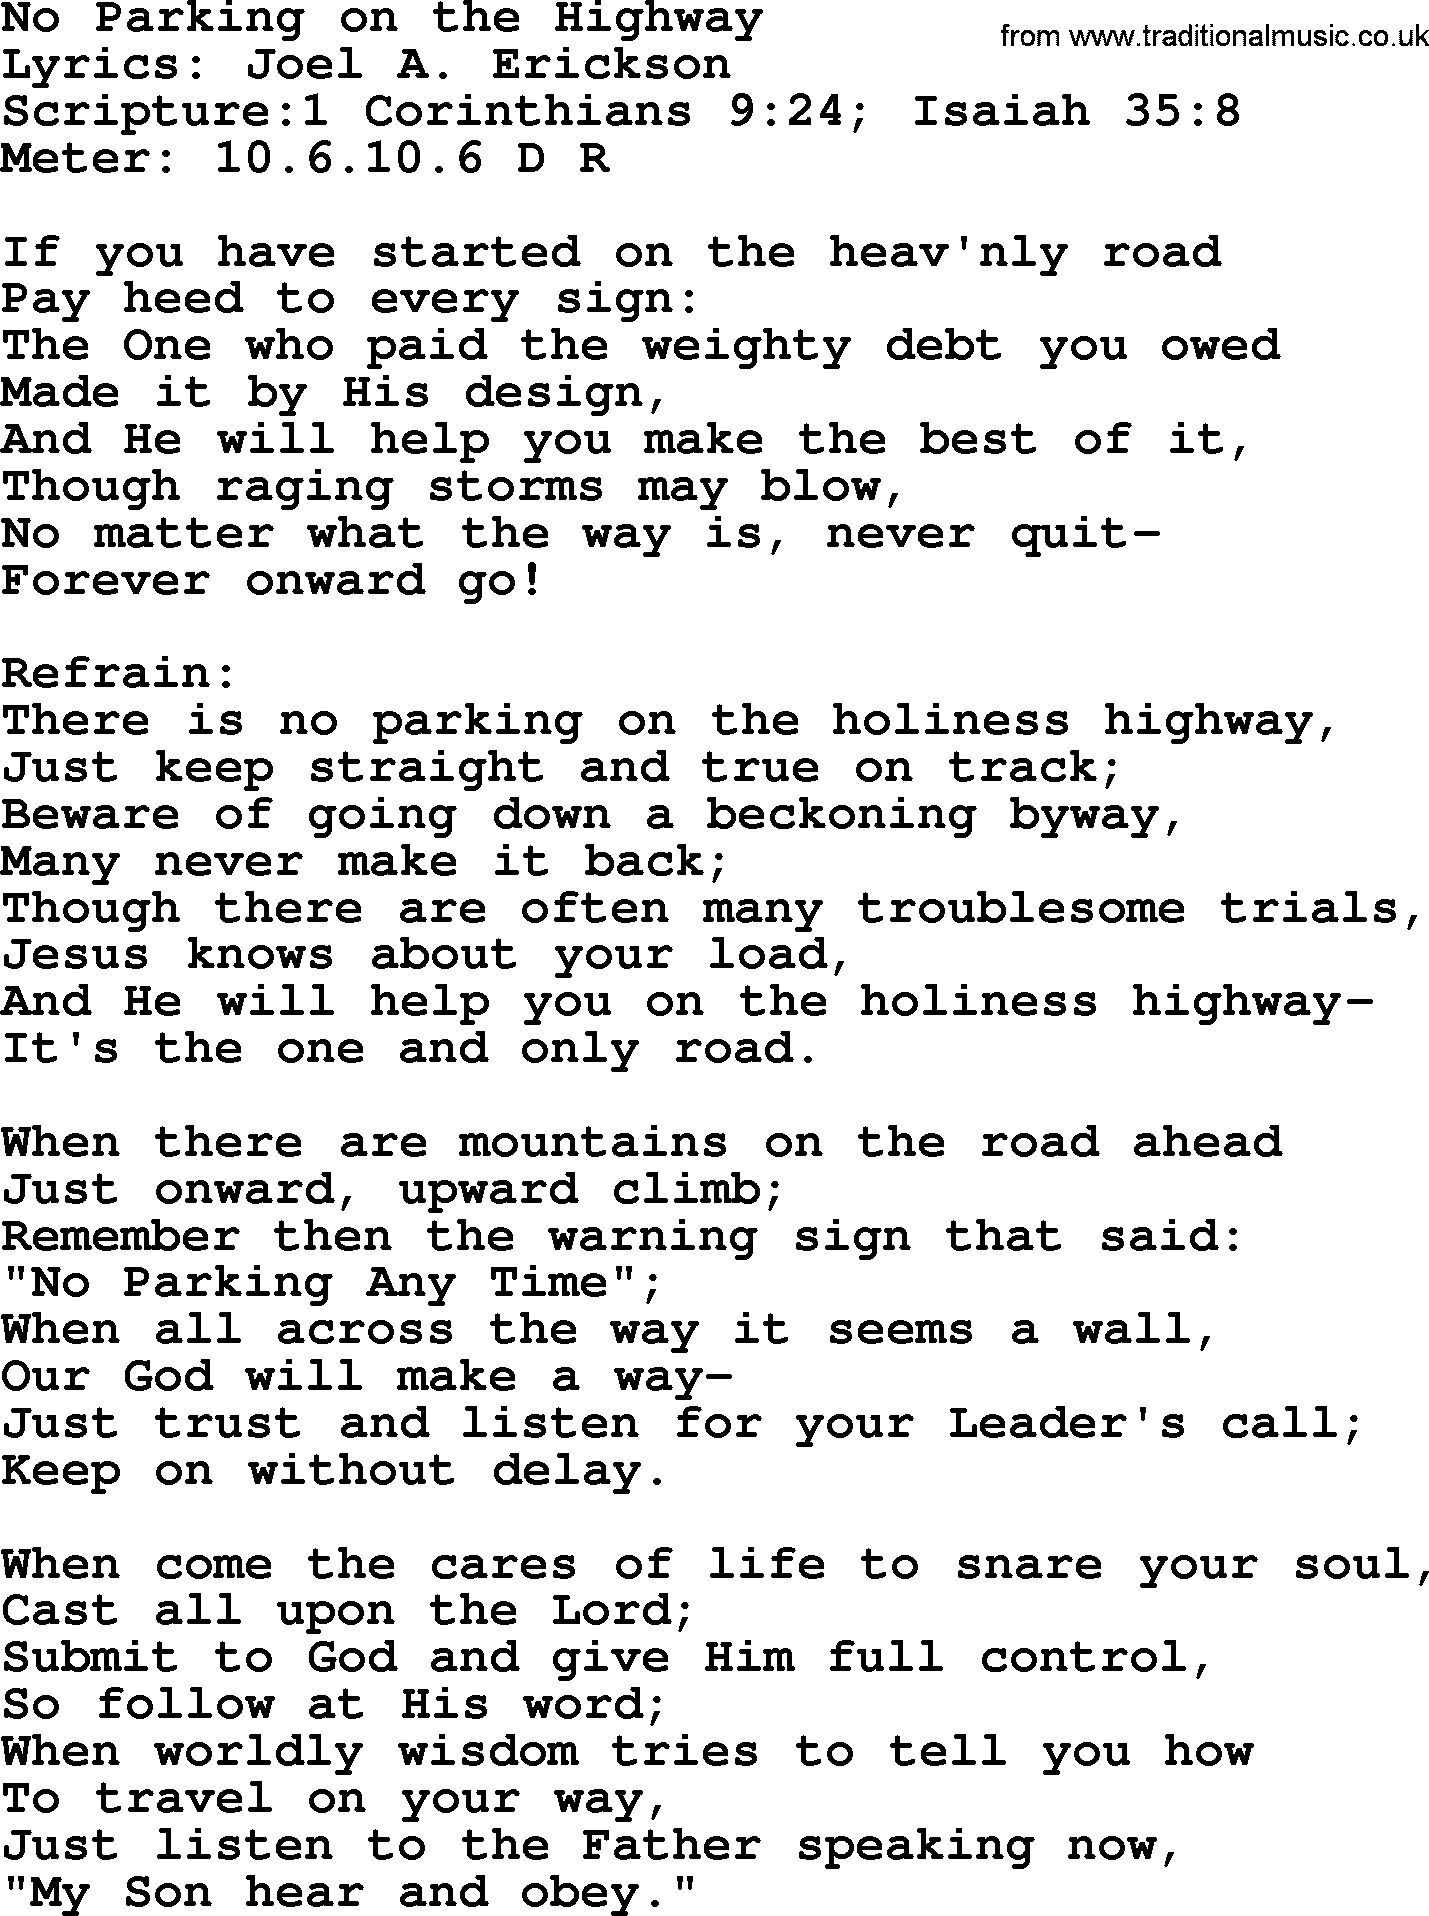 Good Old Hymns - No Parking on the Highway - Lyrics